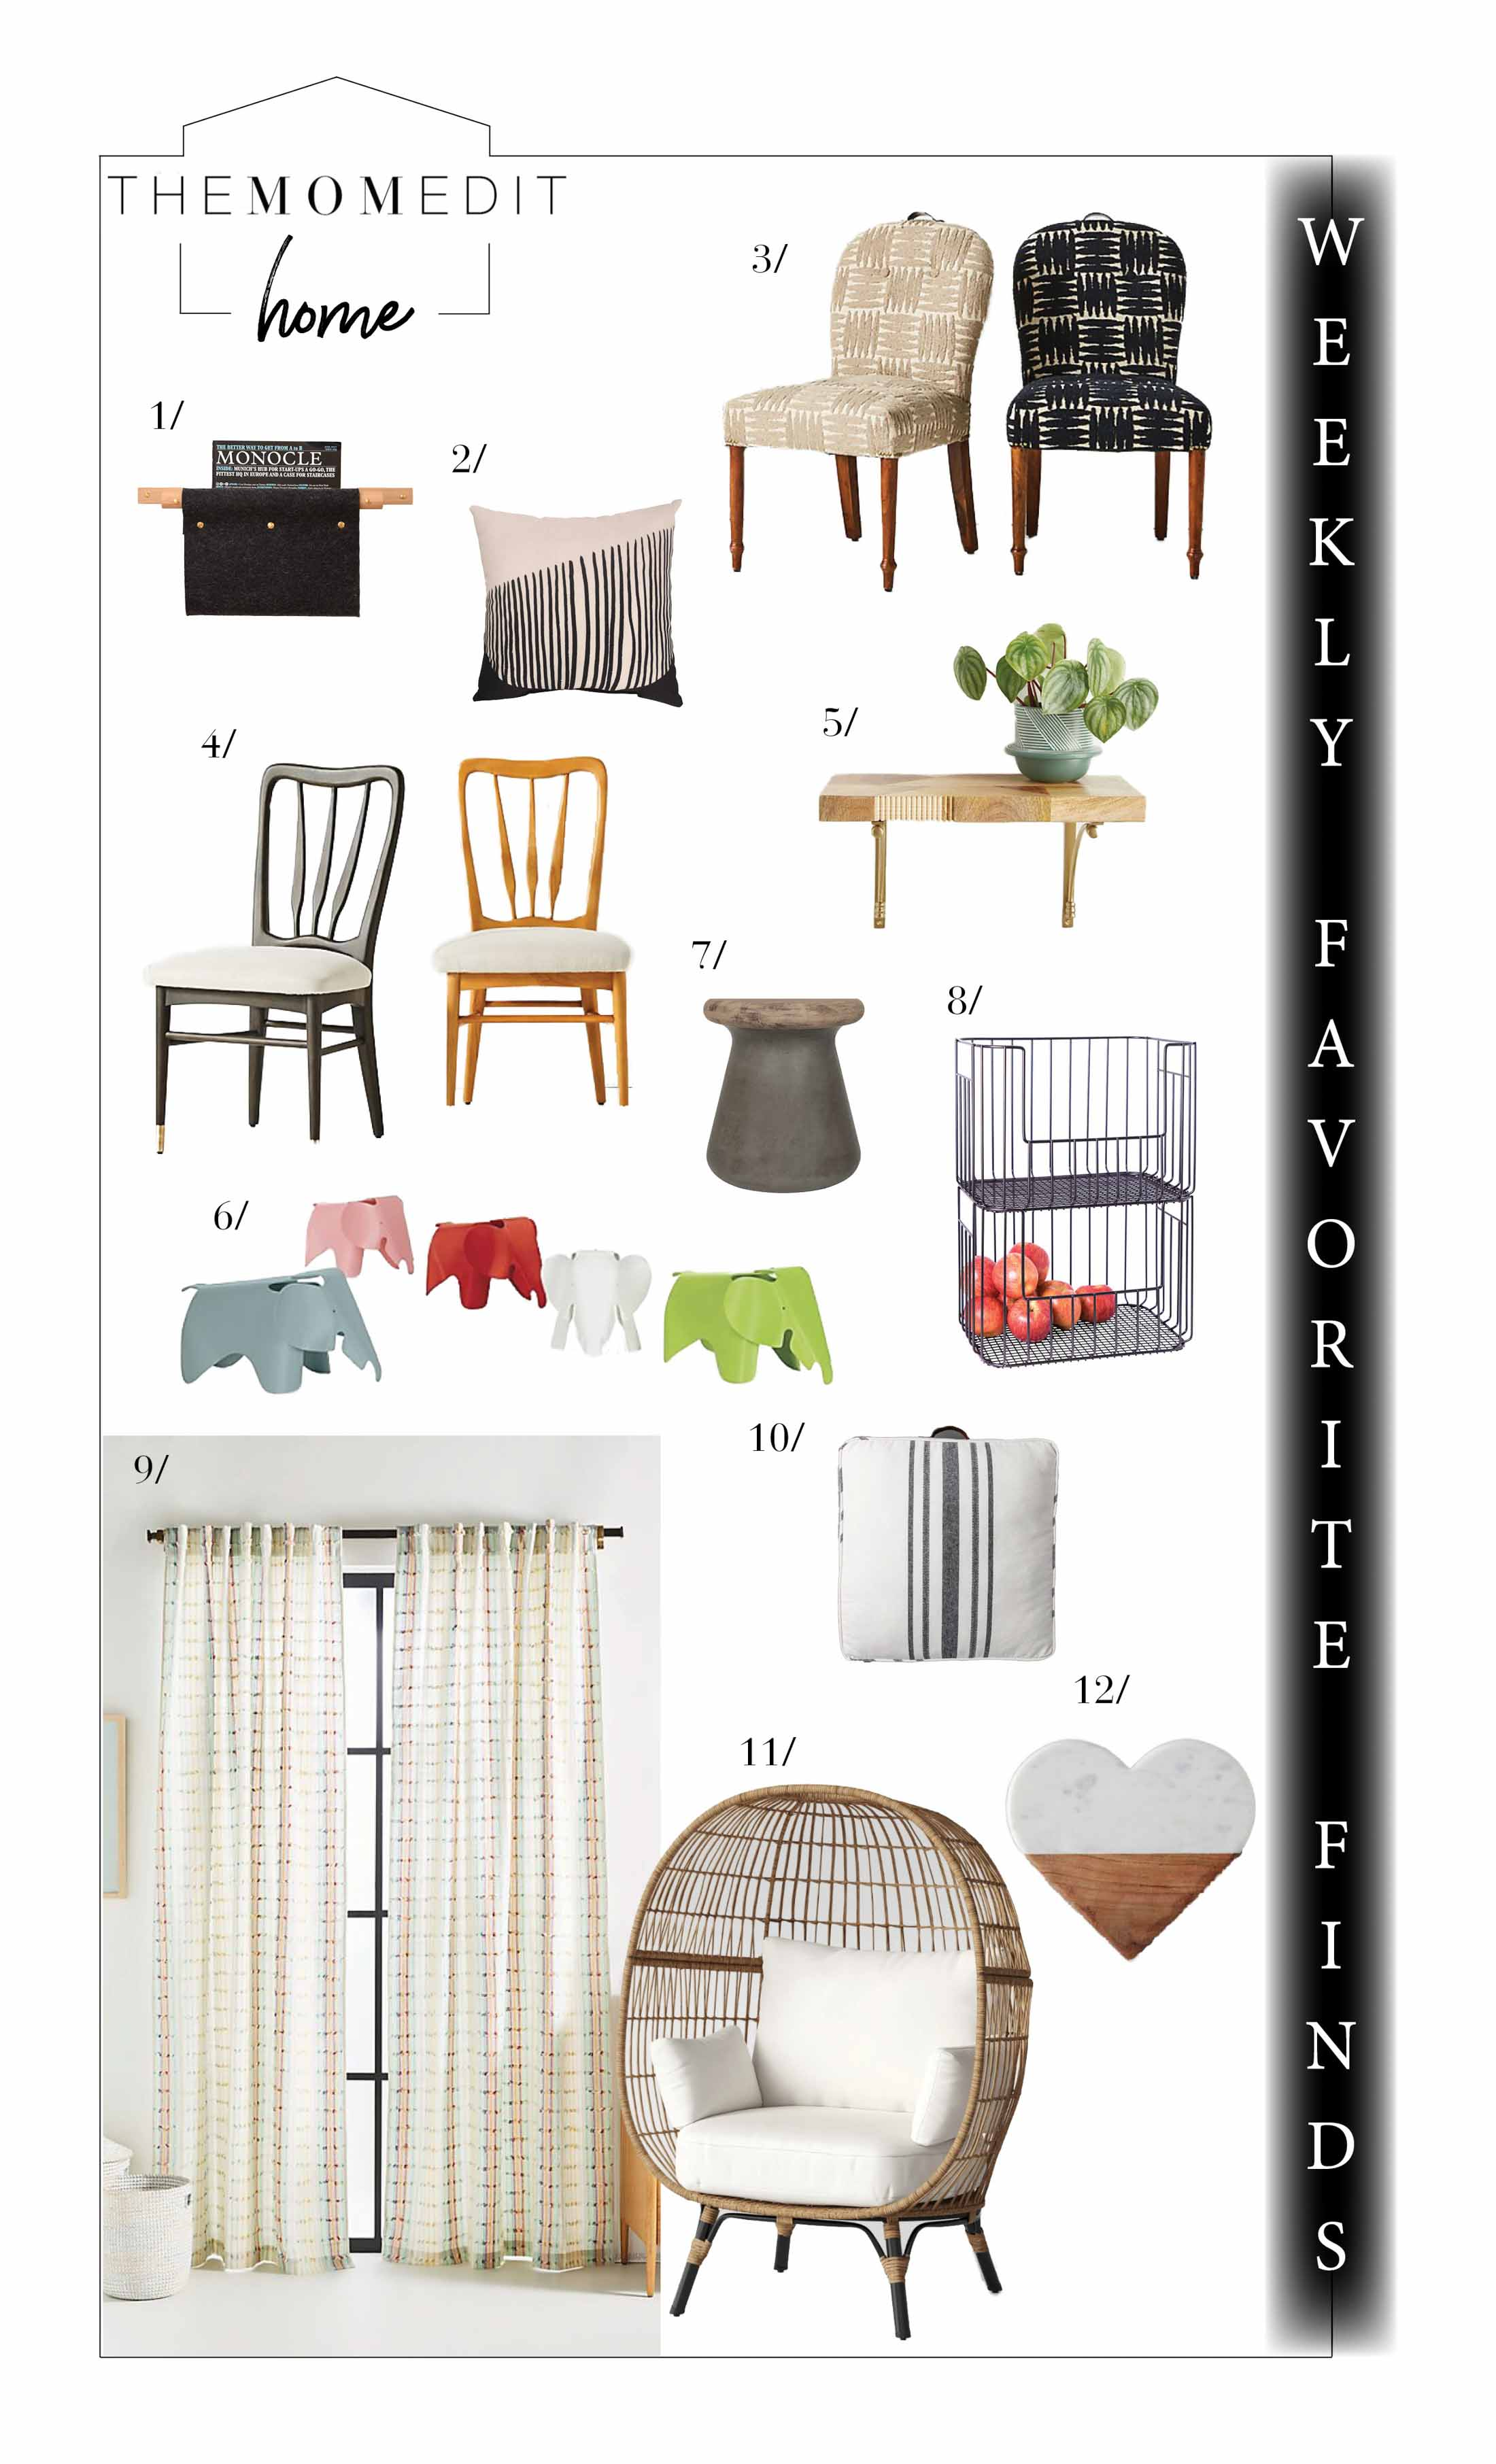 Oh hey, sunshine! This week's favorite finds in home decor feature a little hope & a lot of style. Warm neutrals & rattan for the win! Plus — all the sales!